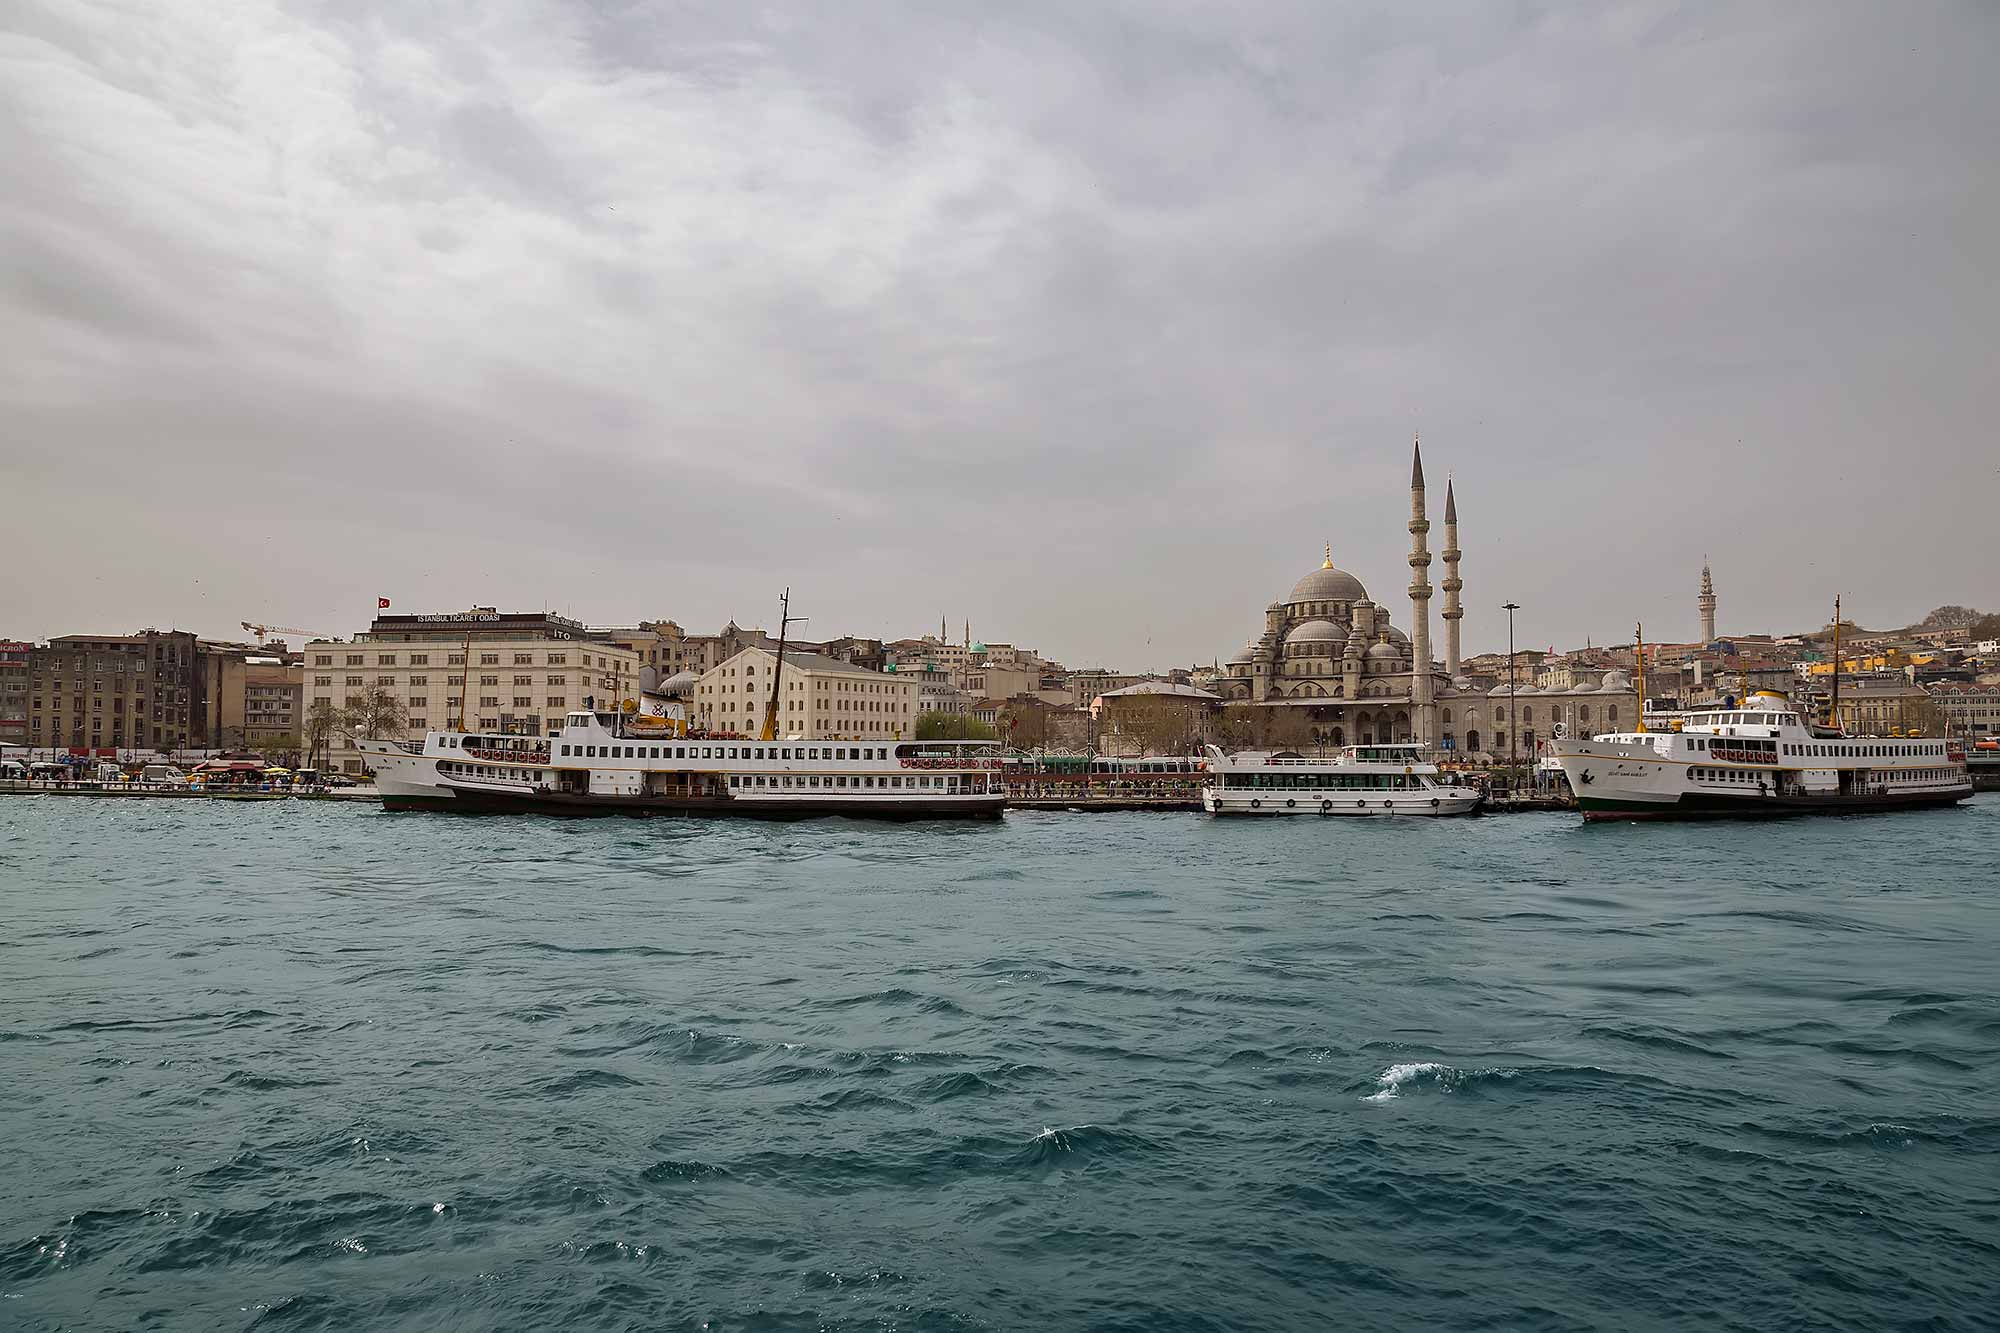 Istanbul city view from the Bosphorus. © Ulli Maier & Nisa Maier